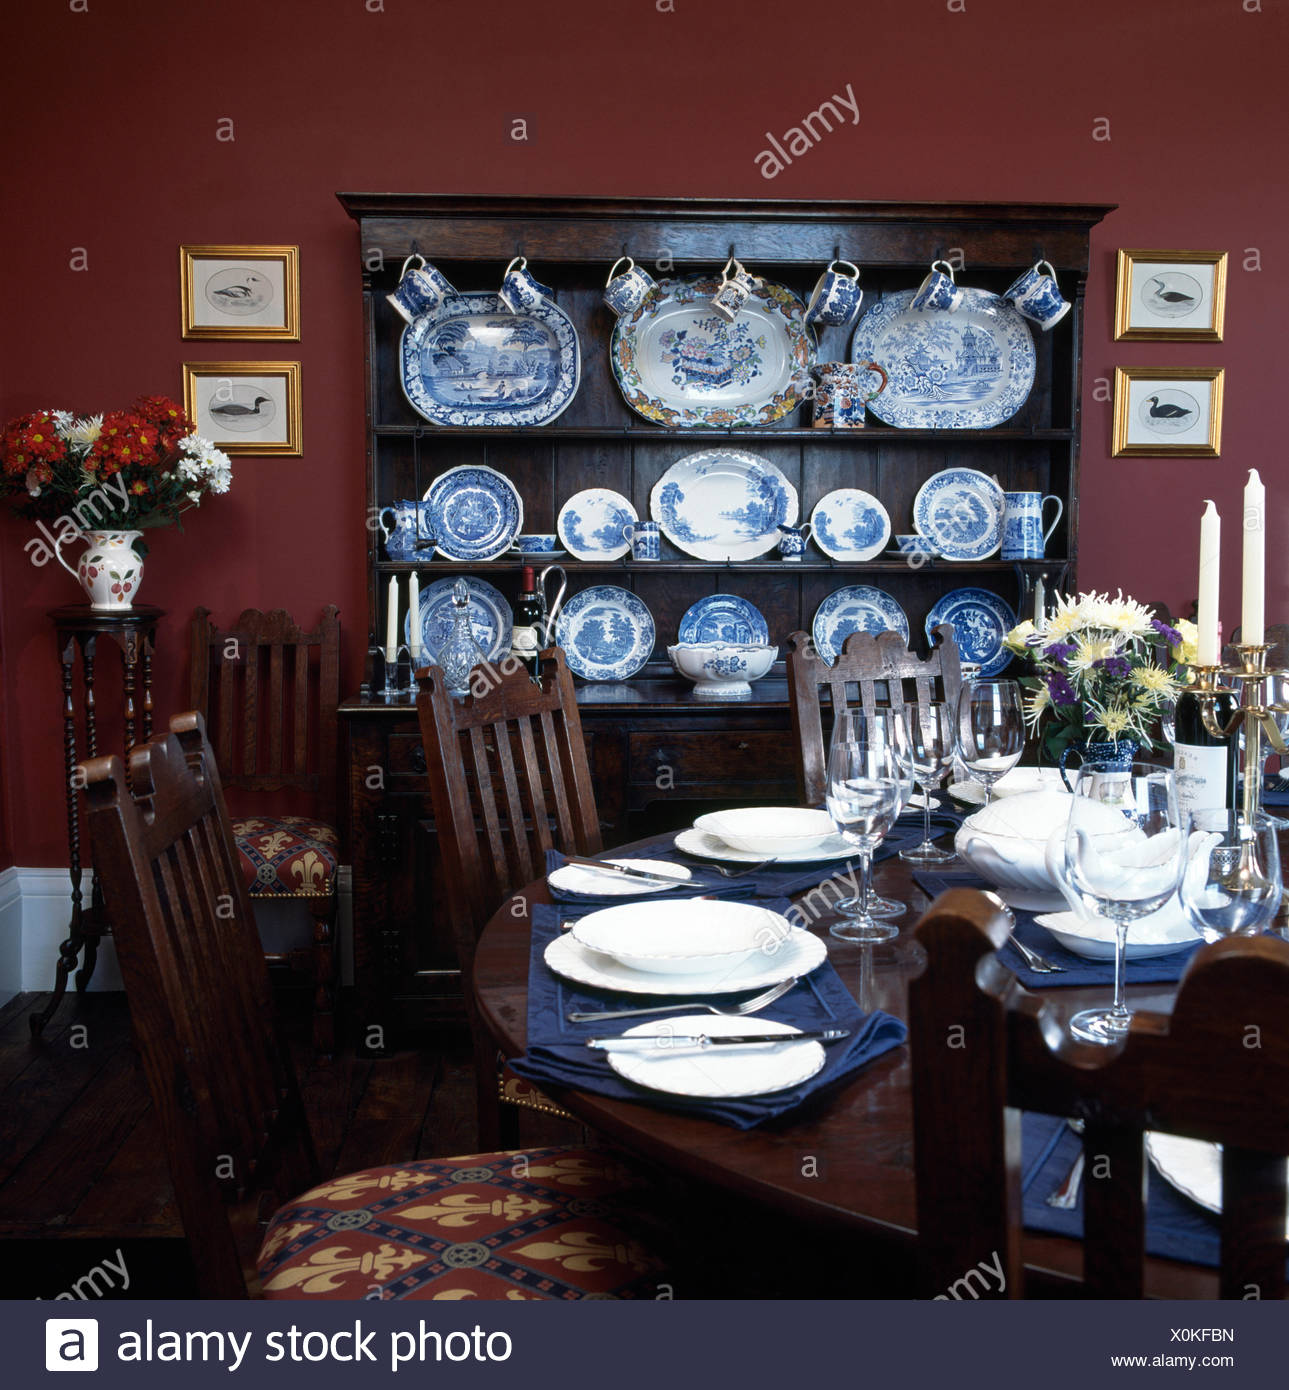 Table Set For Dinner In Dark Red Nineties Dining Room With A Collection Of Blue